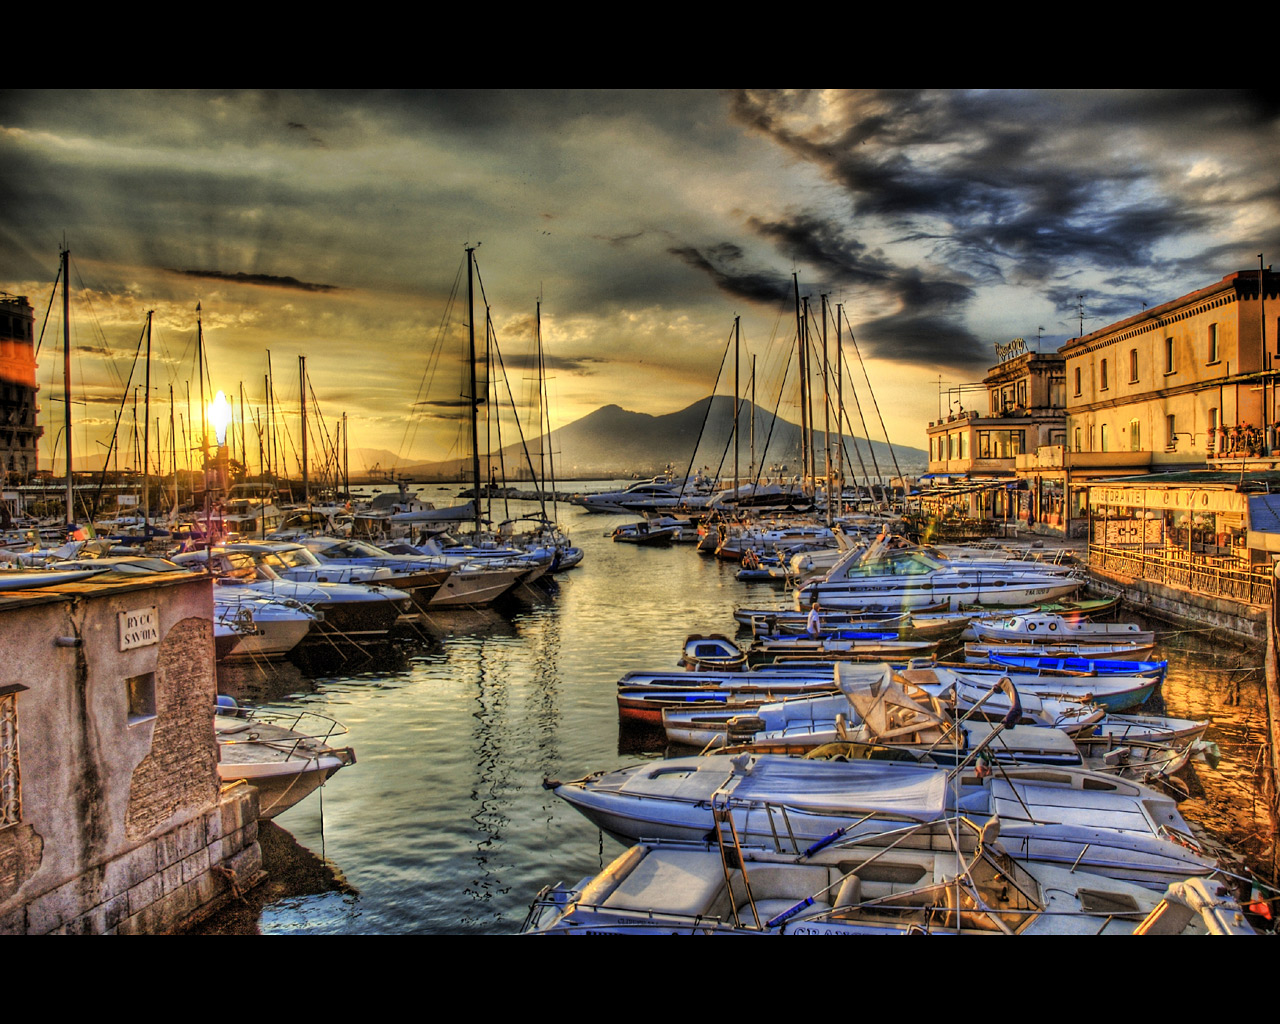 Naples, Italy Europe Wallpaper 622270 Fanpop